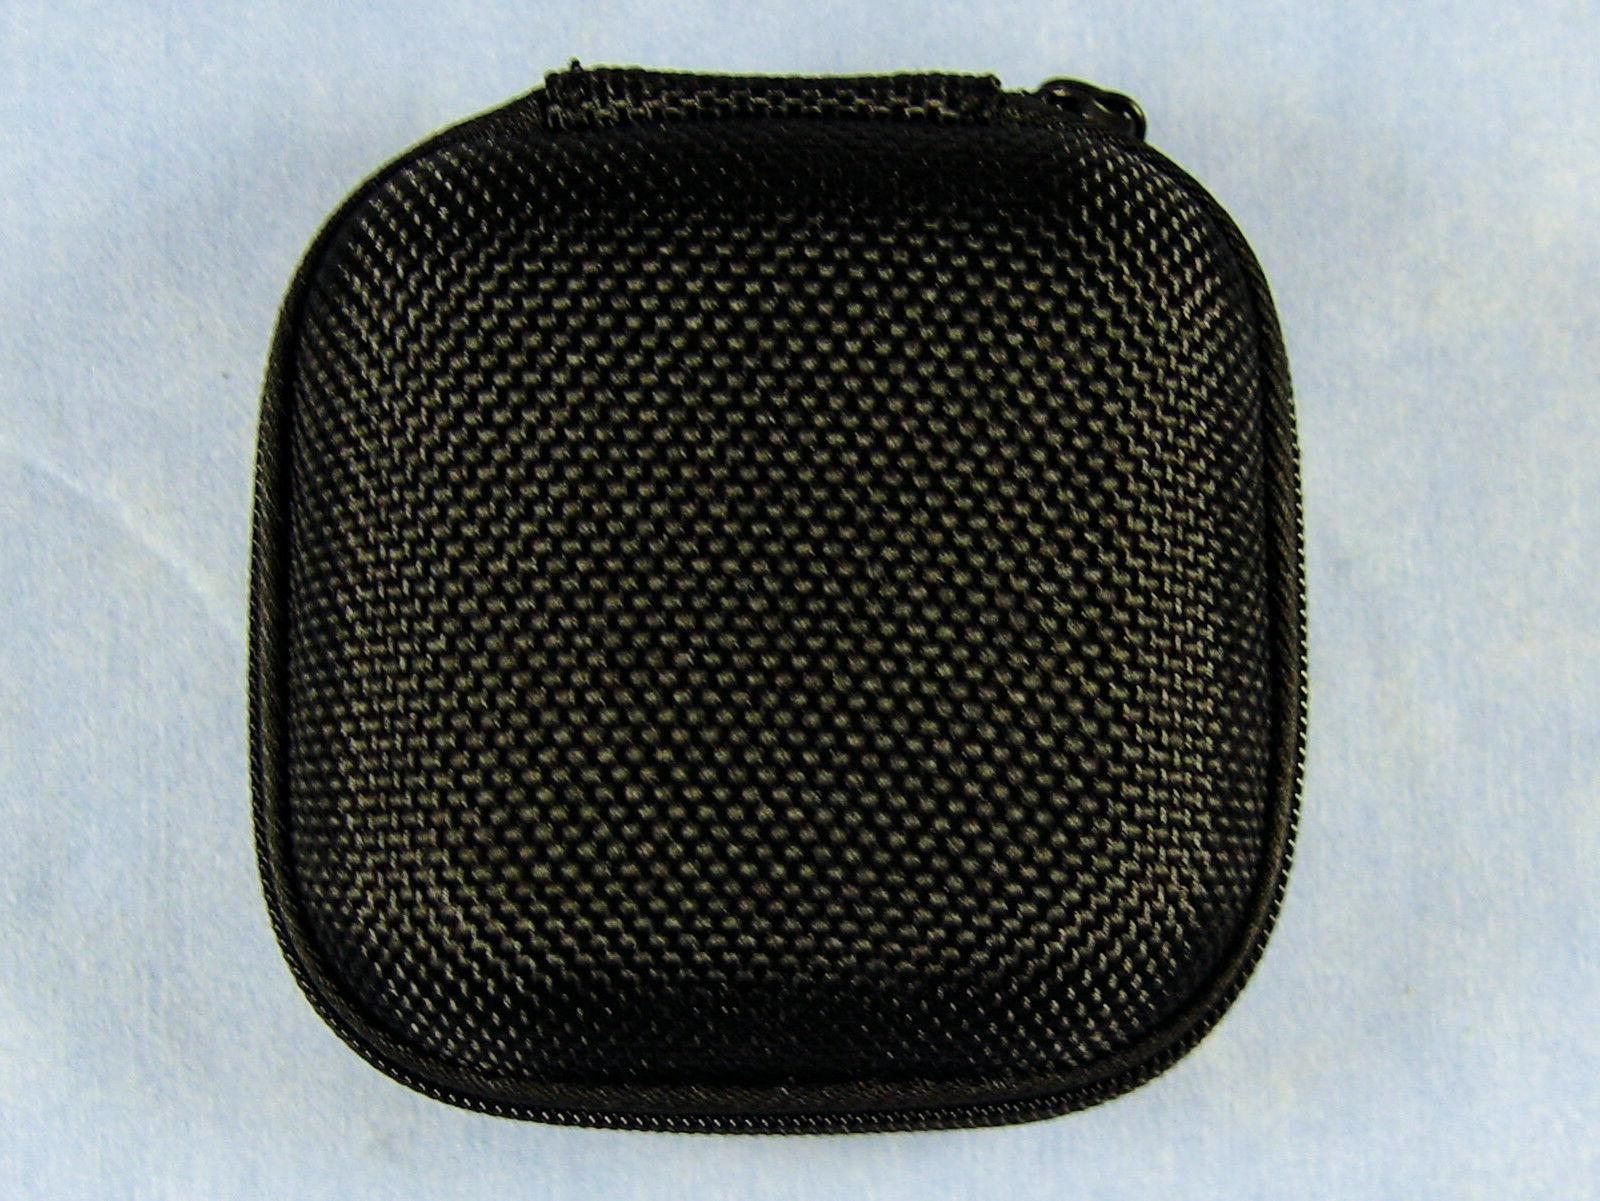 Shure OEM Zippered Black Case for Earbuds,